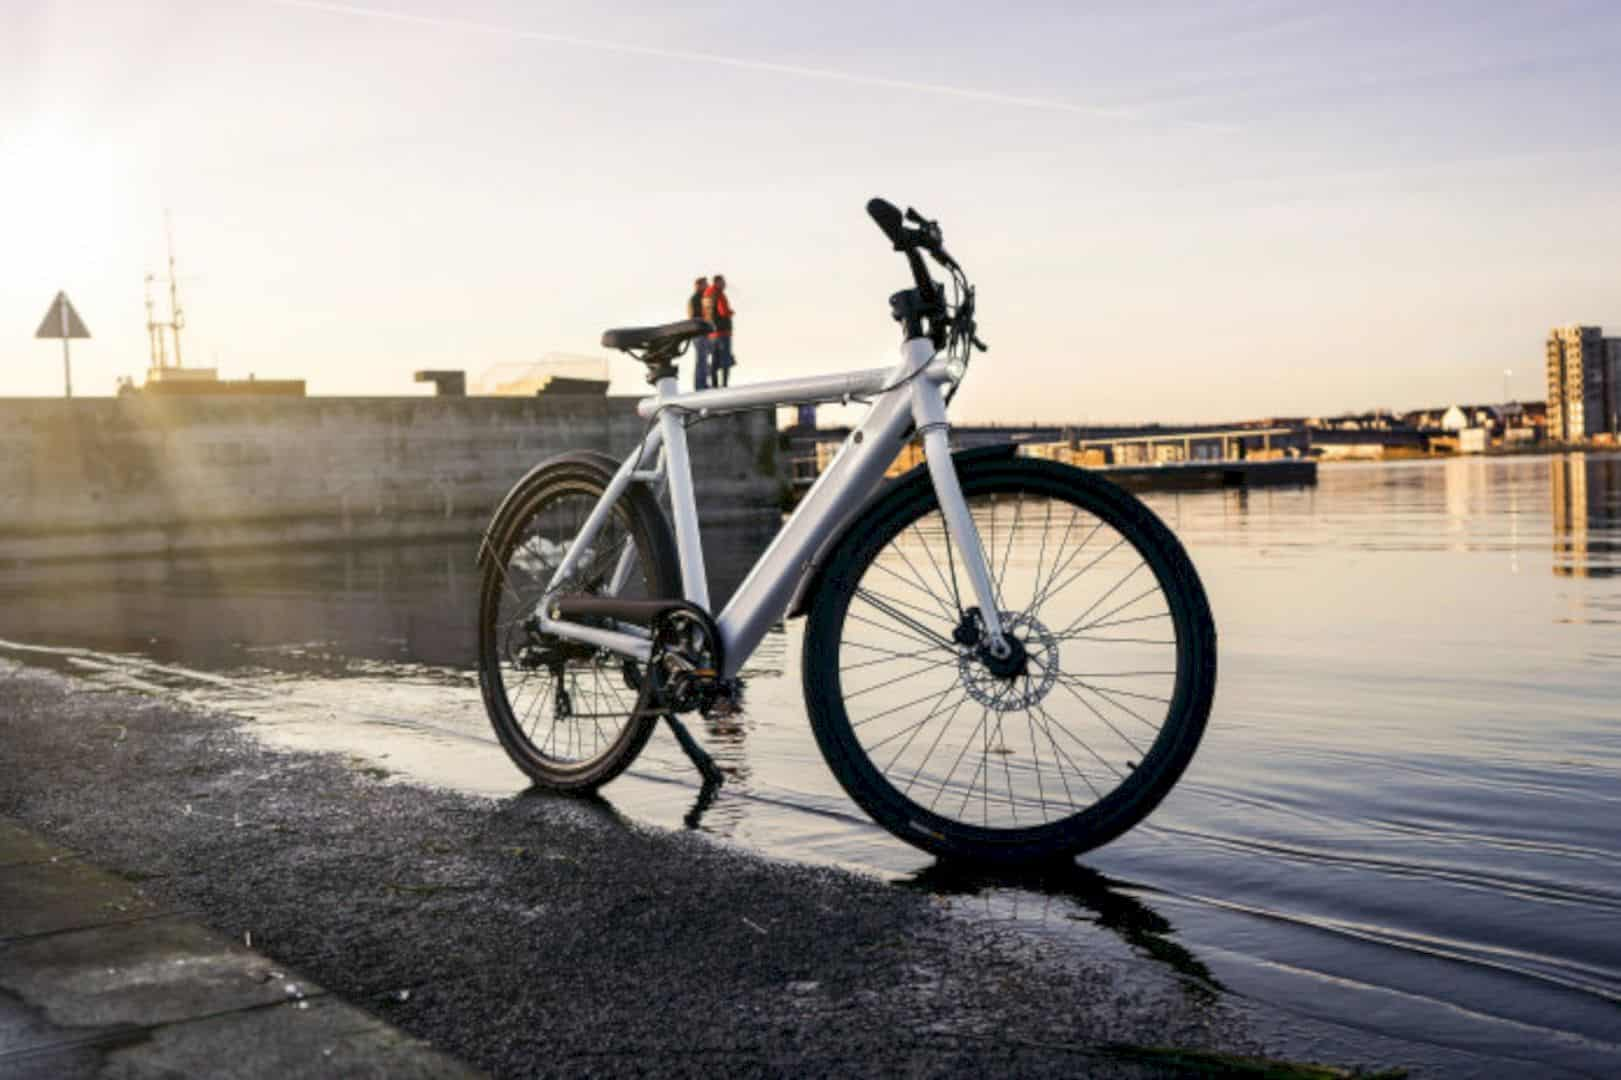 STRØM CITY: The Future of Affordable Electric Bike